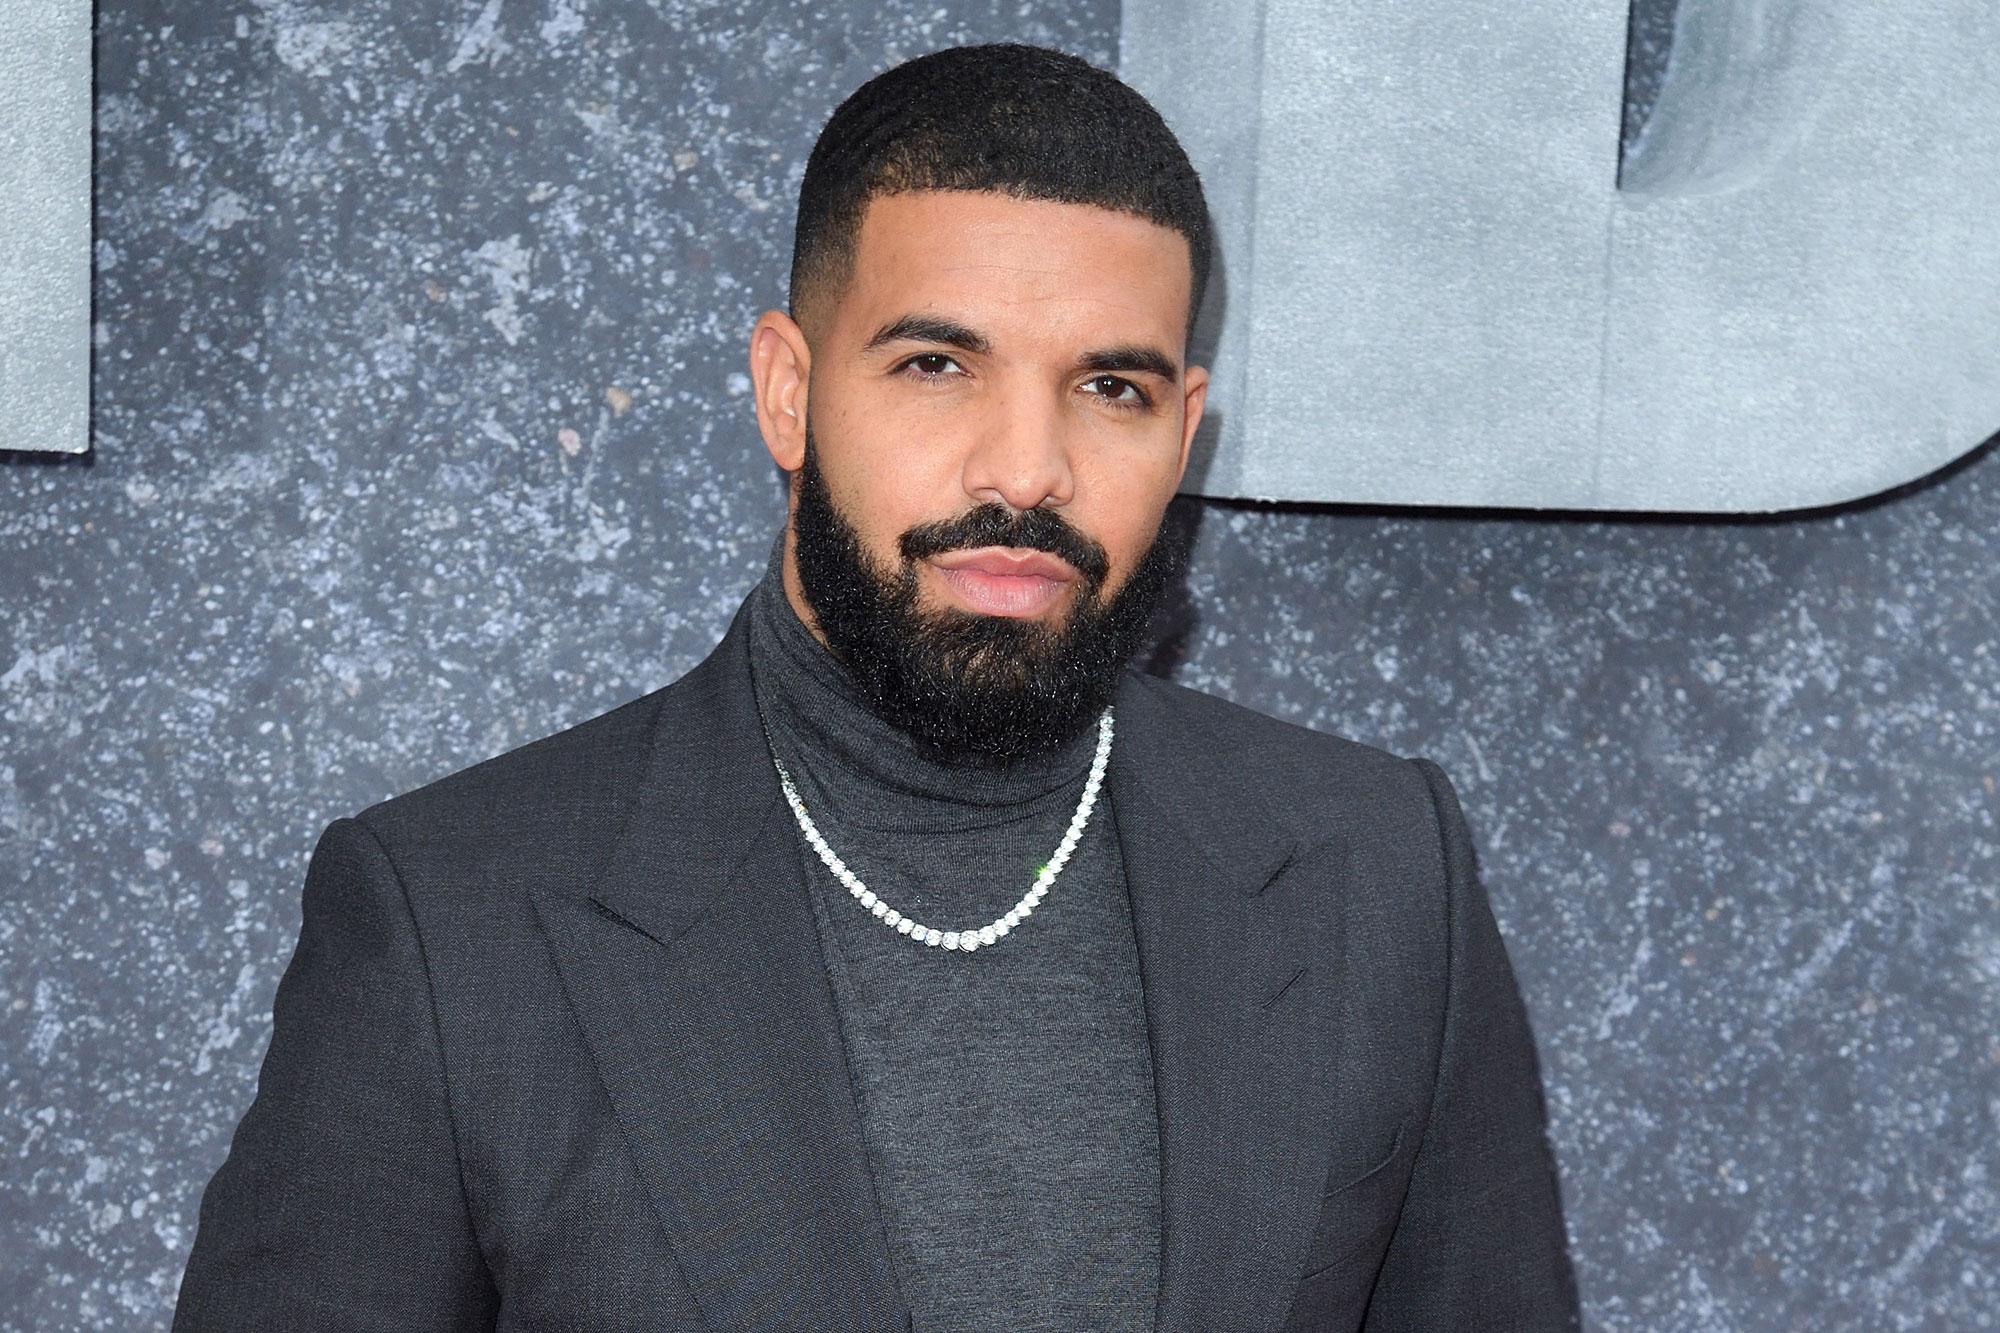 Drake shares photos of son Adonis alongside message to fans | EW.com